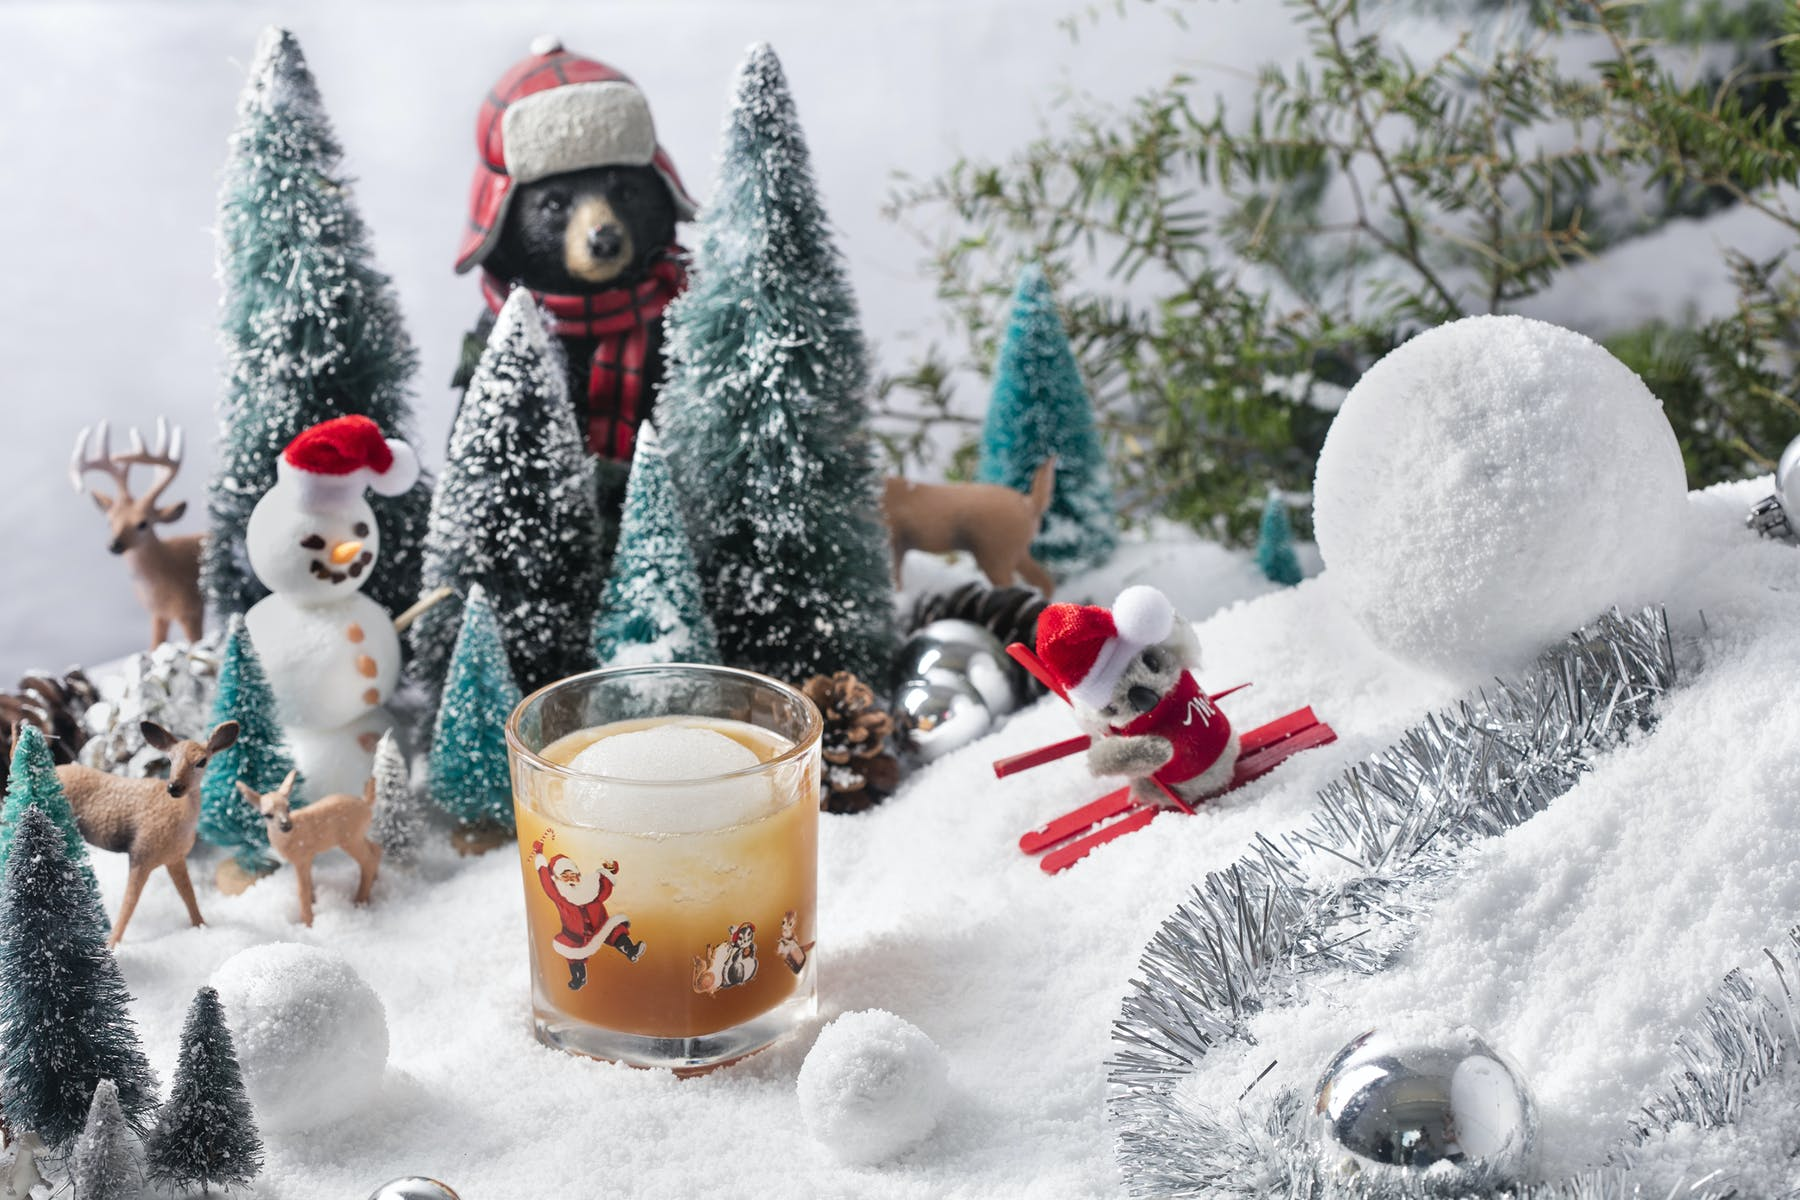 a group of stuffed animals that are in the snow